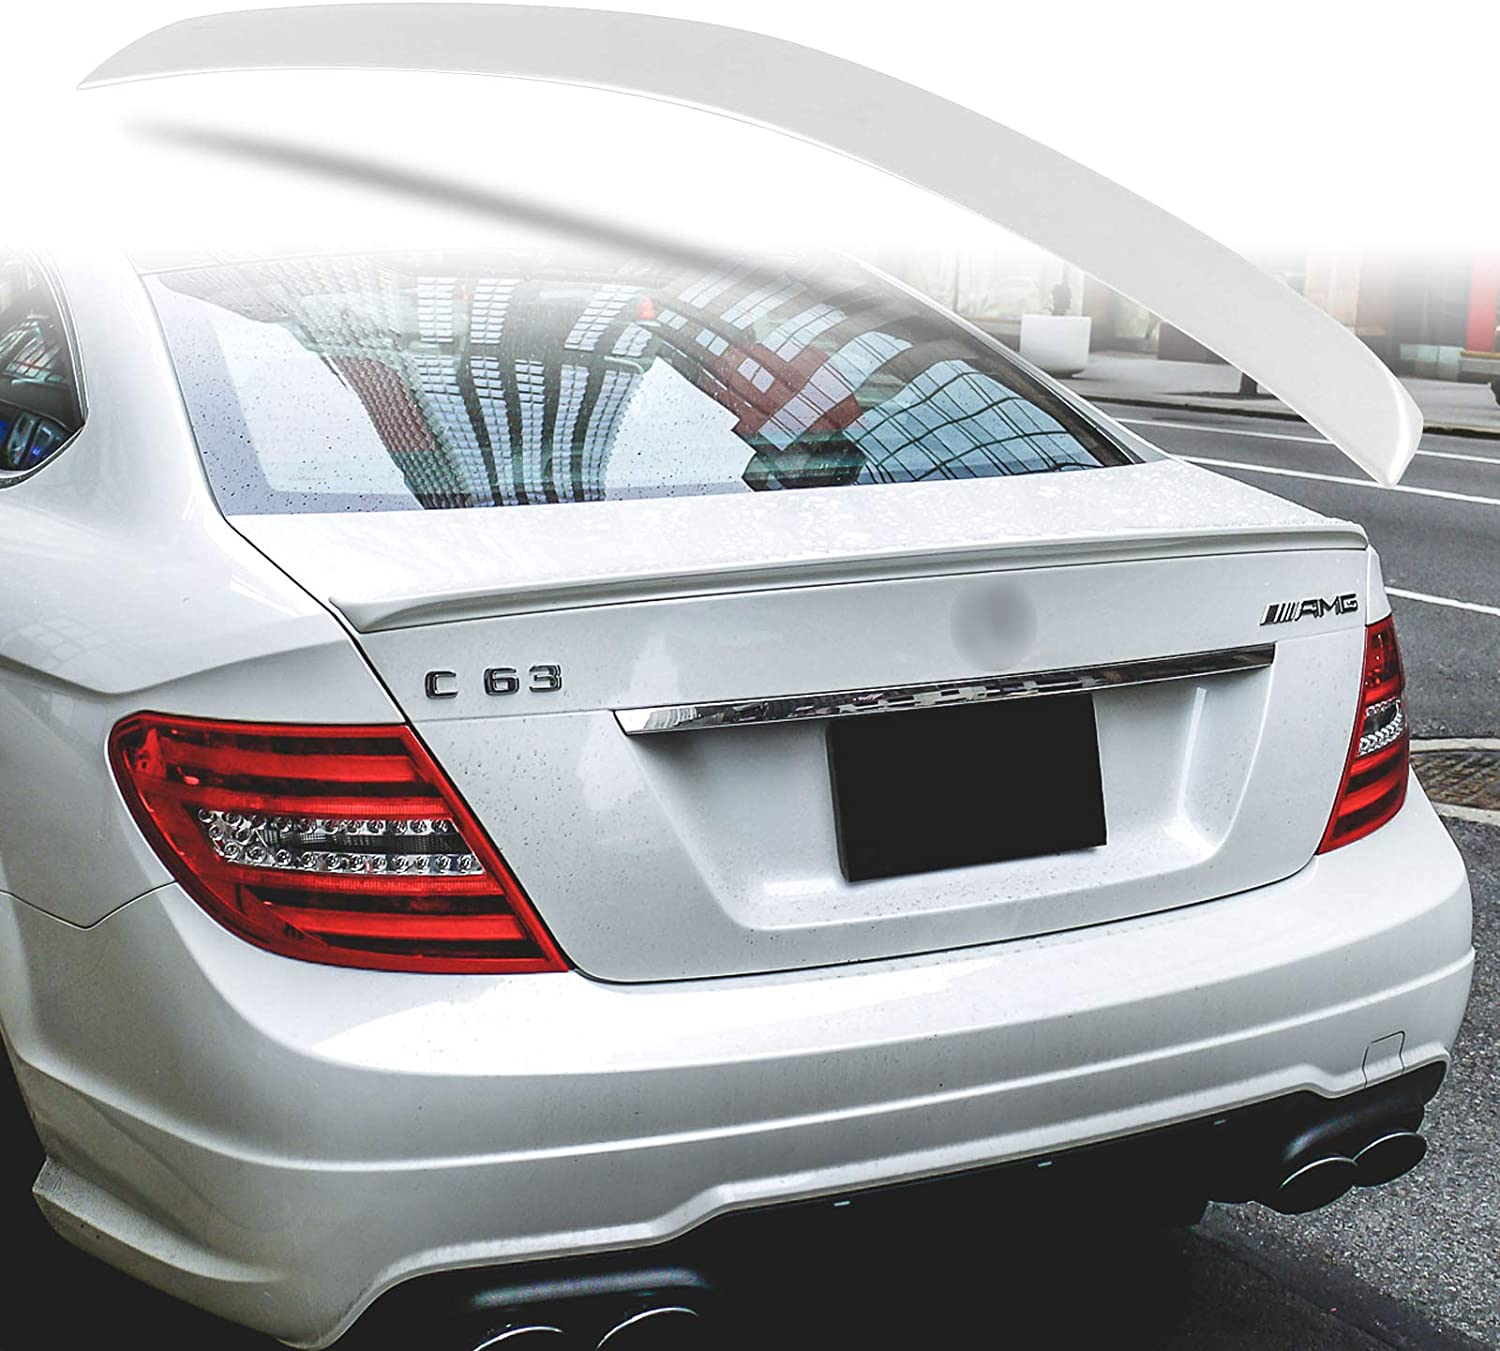 Painted Color 359 Fit For Mercedes Benz C-Class W204 Rear Trunk Spoiler ABS